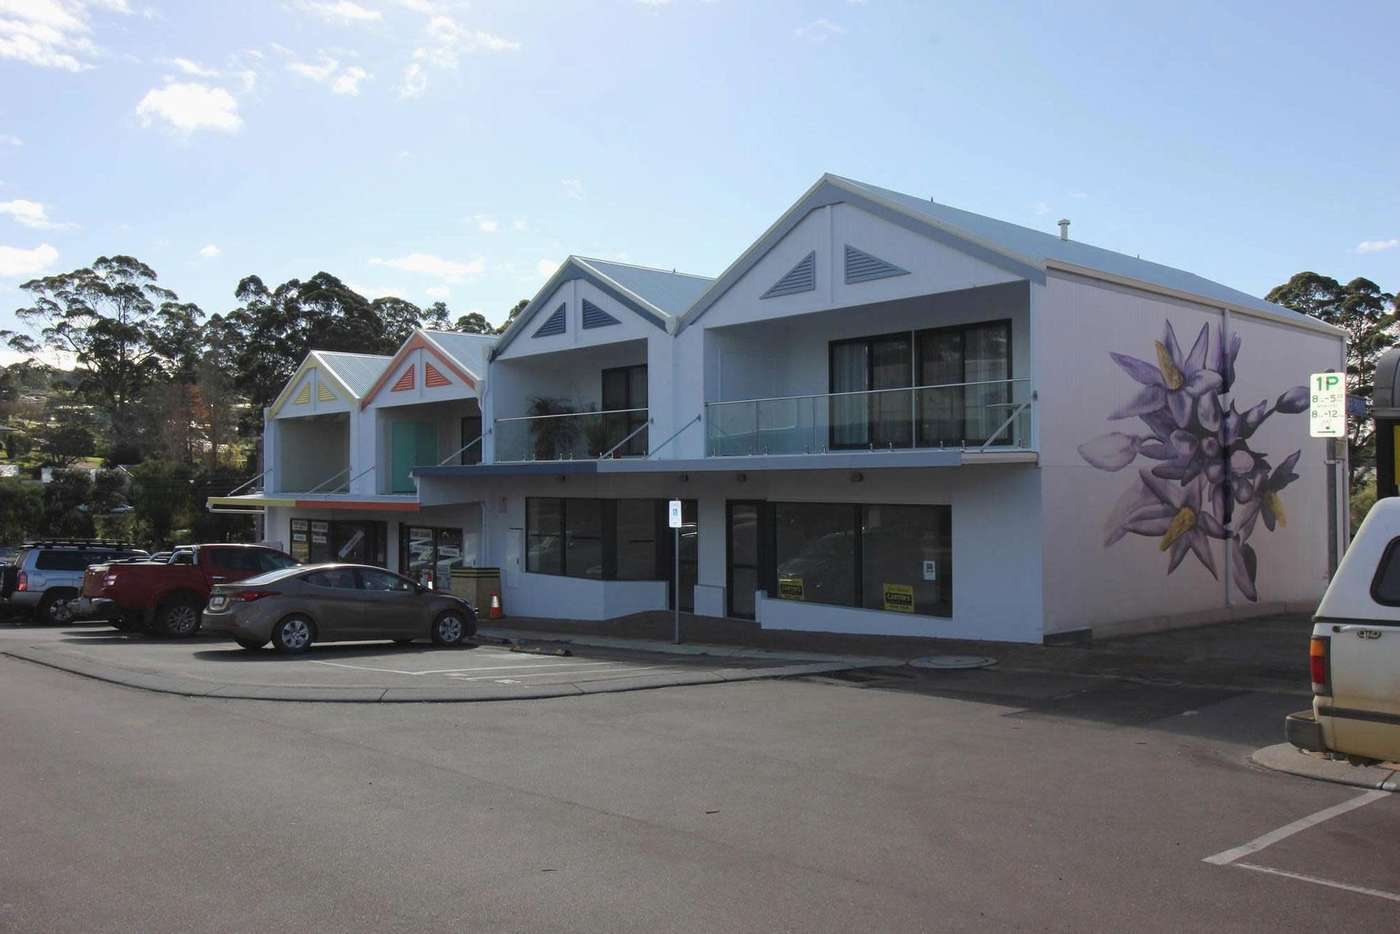 """Main view of Homely house listing, """"The Terrace"""" Strickland Street, Denmark WA 6333"""